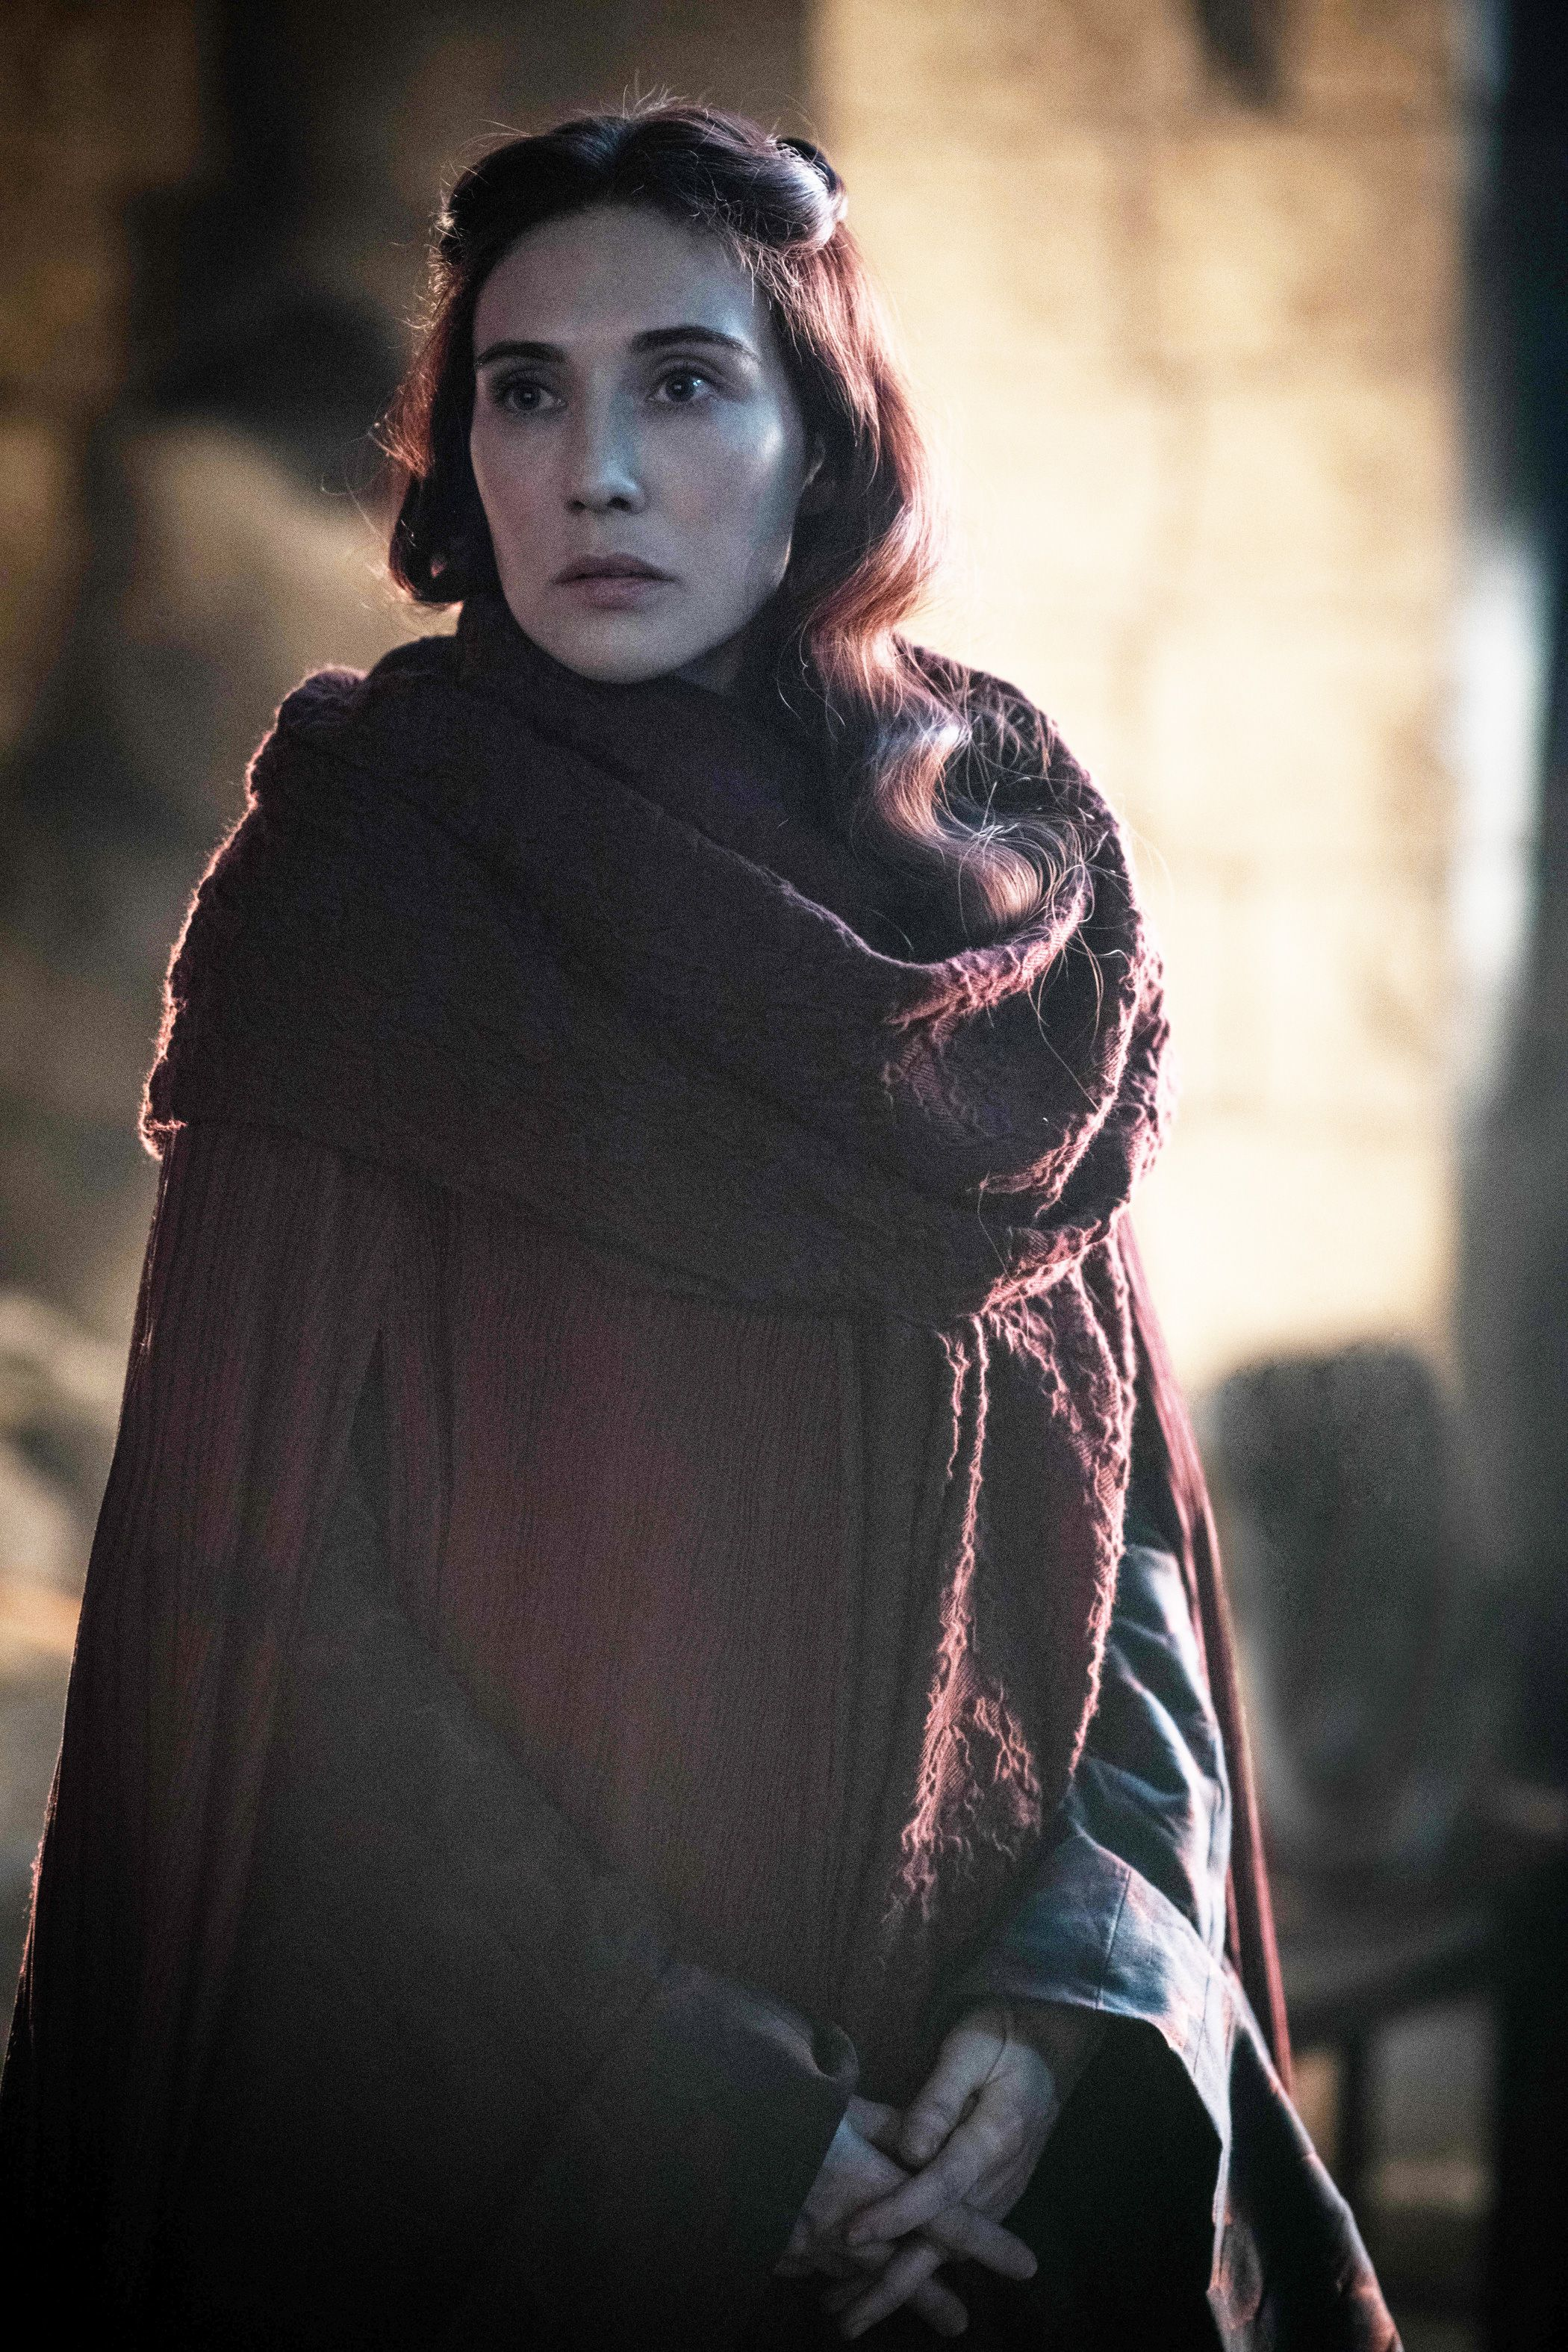 Nude photos from game of thrones